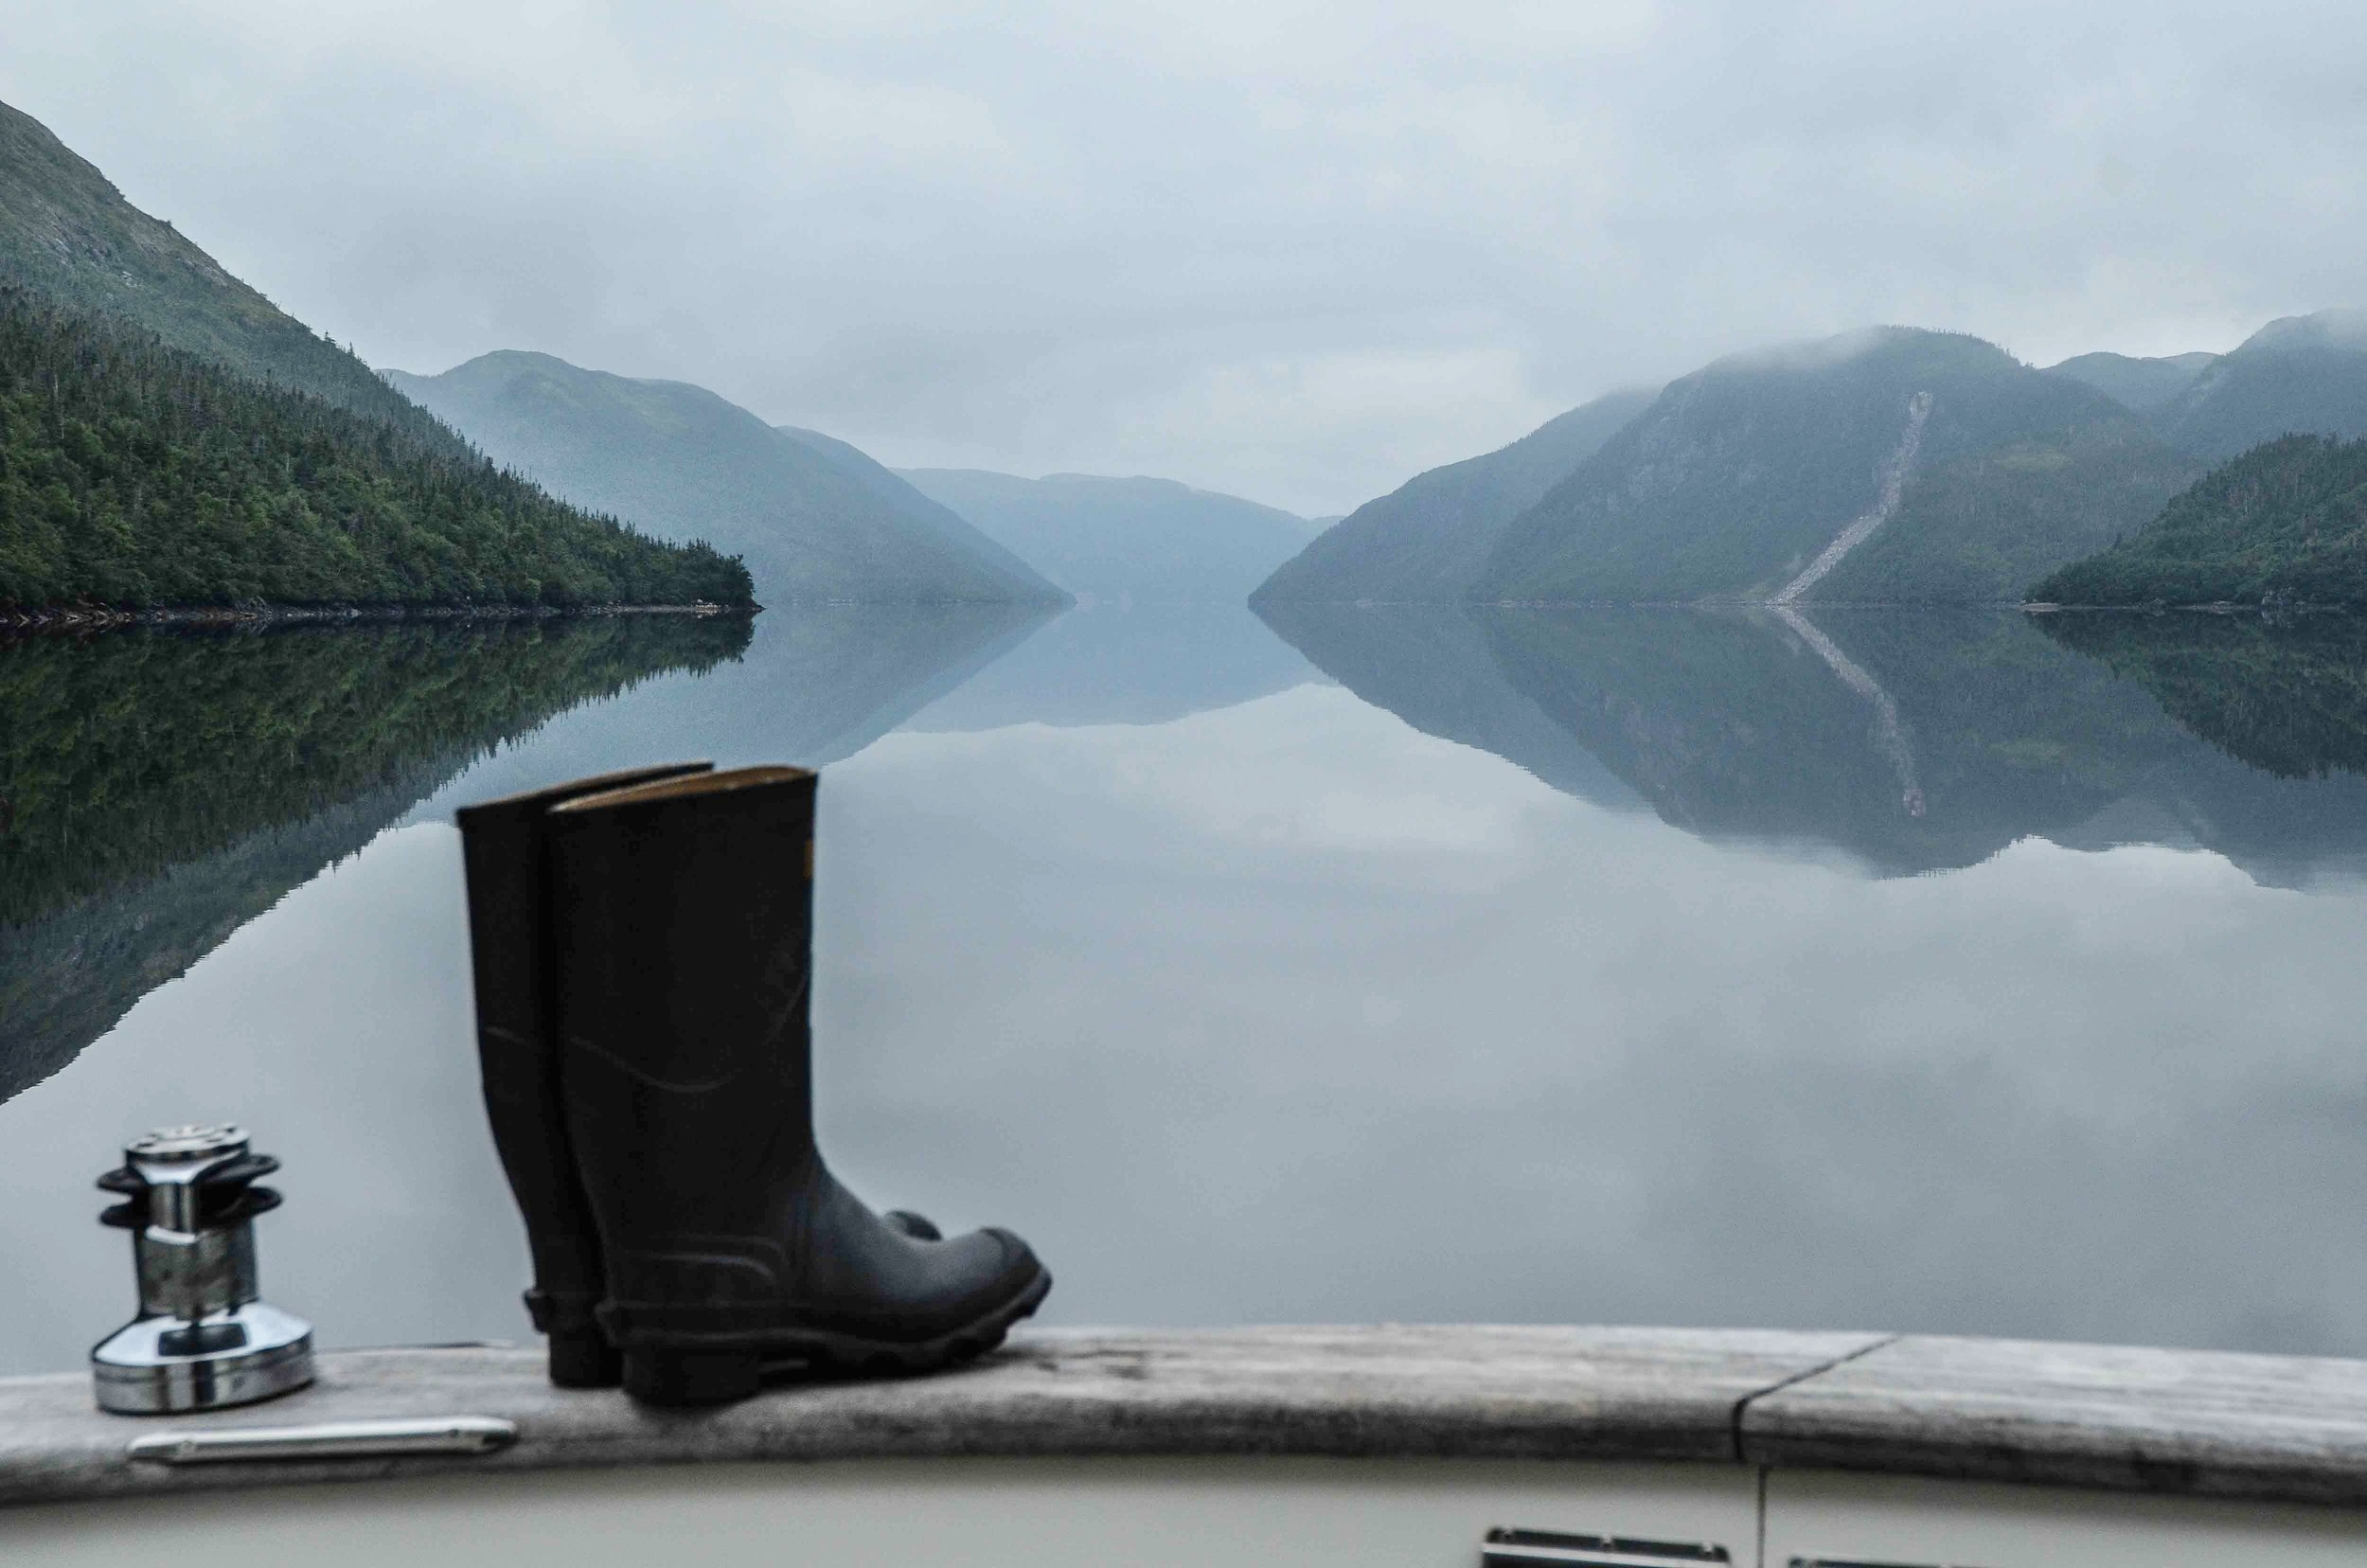 Typical early morning scene in Newfoundland's fjords. It is usually overcast in the mornings with light or sometime heavy fog. By mid-morning the fog lifts exposing the mountains. Mary's boots were waiting for her. We wore wellies like these for all inland exploring inside the fjords. In addition to exploring ashore we also did quite a bit of shoreline dinghy exploring. We even caught two near-shore lobster for dinner from the dink with a dip net.